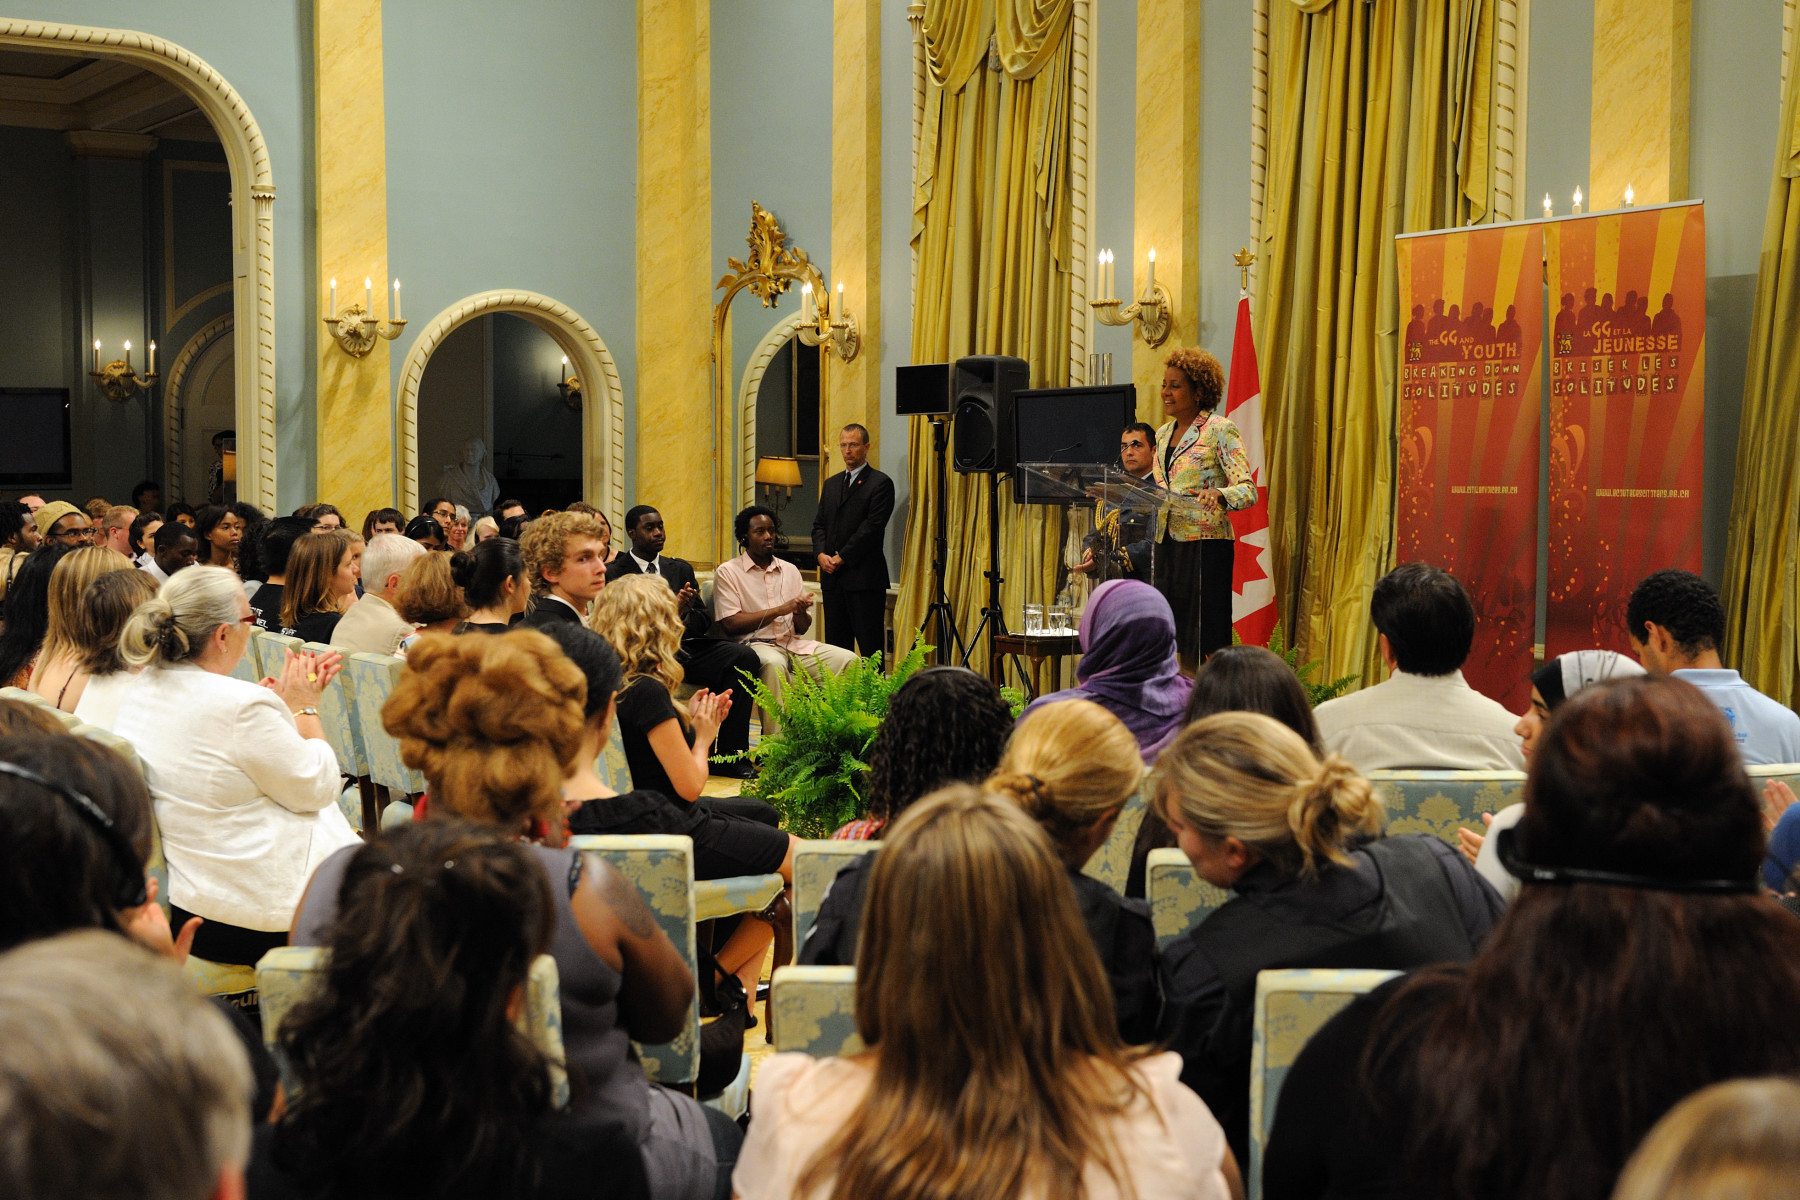 "This event set the stage for five additional Governor General's Youth Dialogues to be held across the country in August and September 2010. The Governor General's Youth Dialogues ""Can We Talk"" series focuses on galvanizing young Canadians in every part of the country to become catalysts of hope, creativity and social transformation. Her Excellency shares the ideas and perspectives presented during the dialogues with decision-makers."